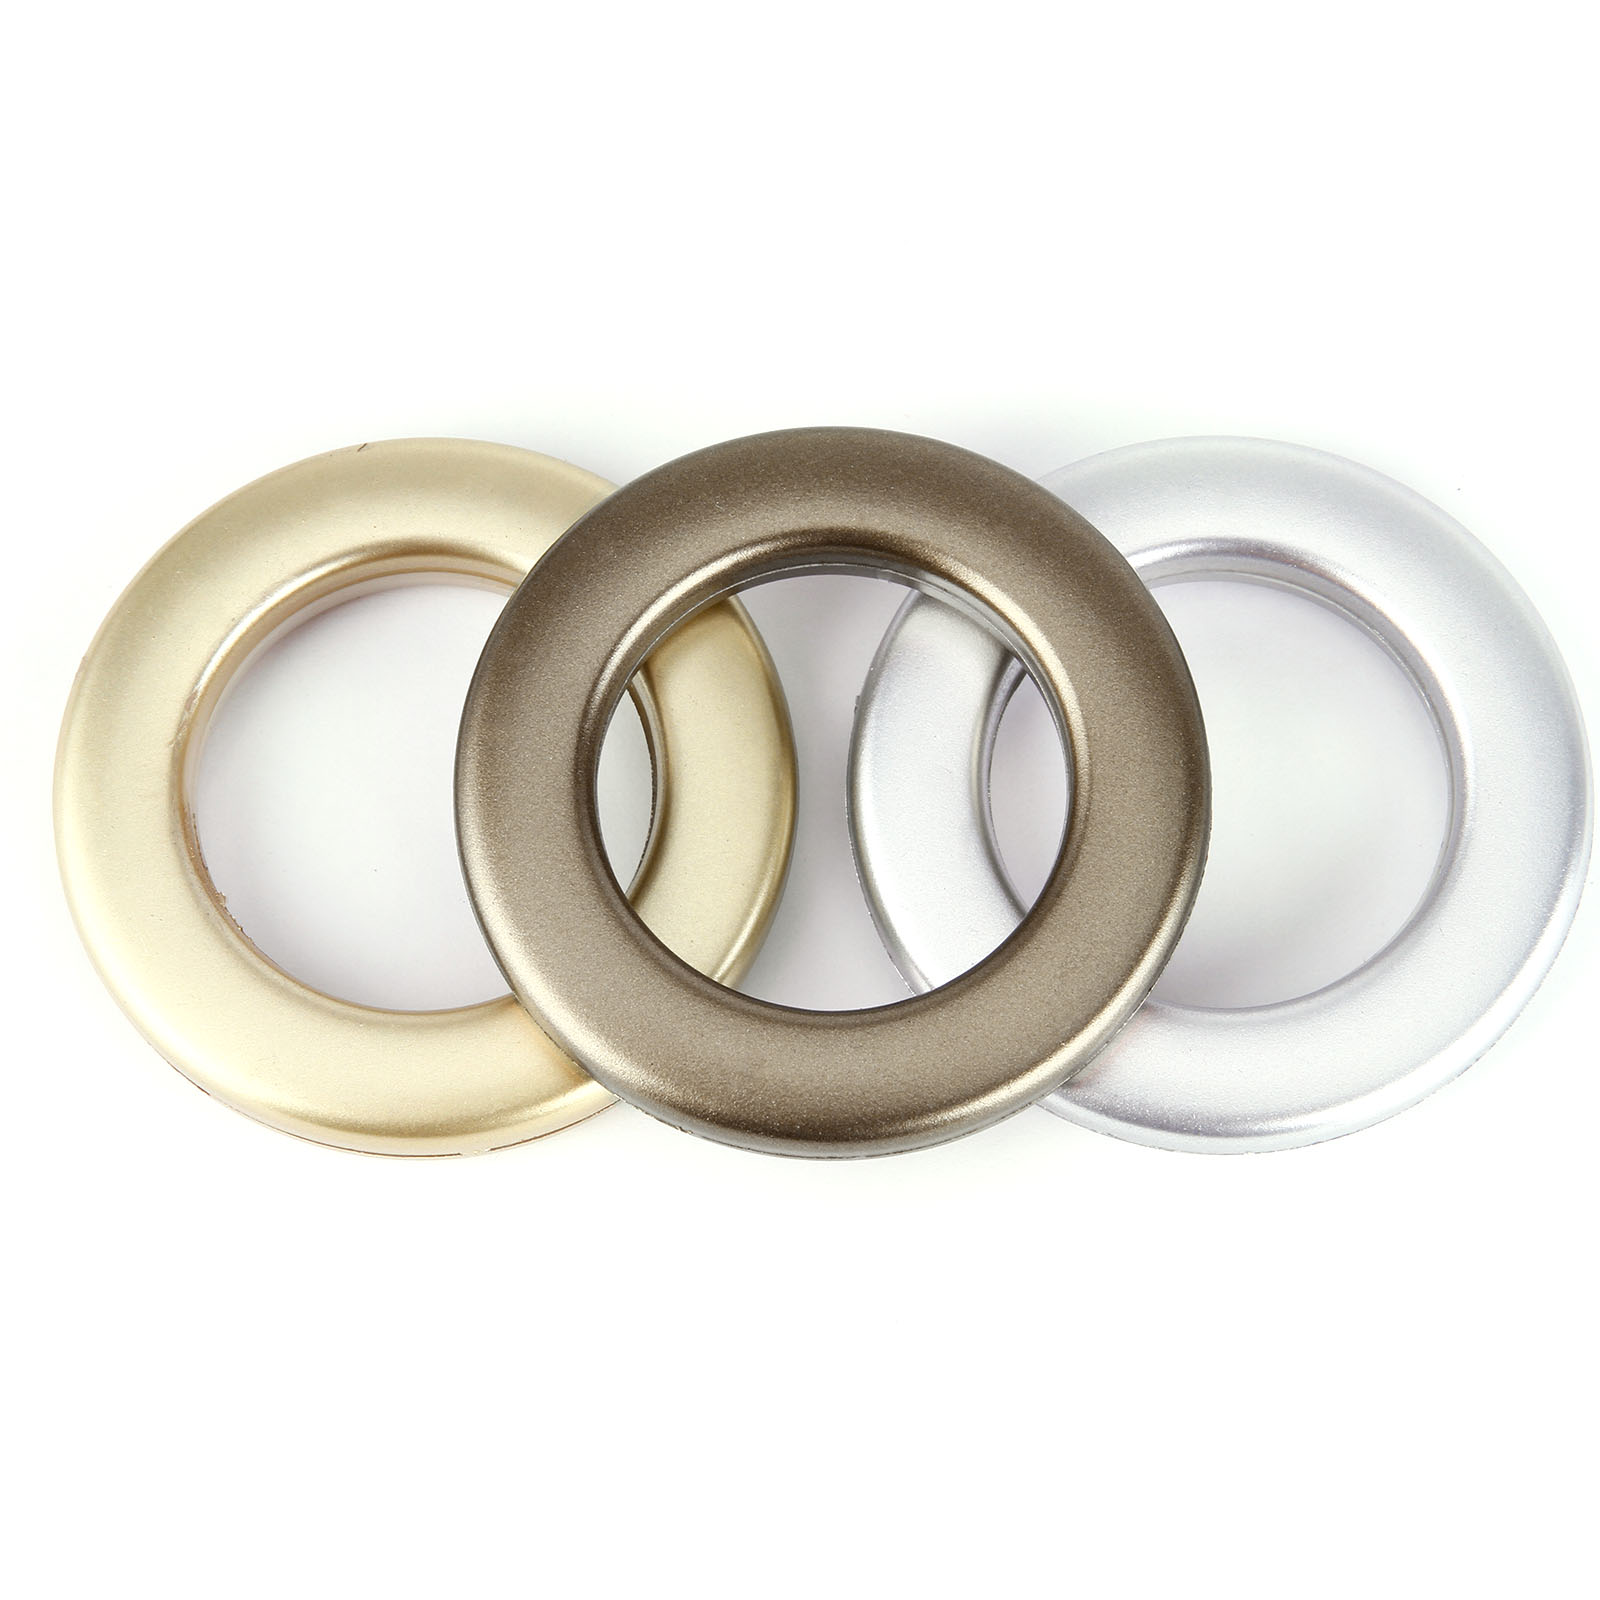 Set Of 20 Plastic Snap Drapery Curtain Eyelets Heading Rings Clips Grommets